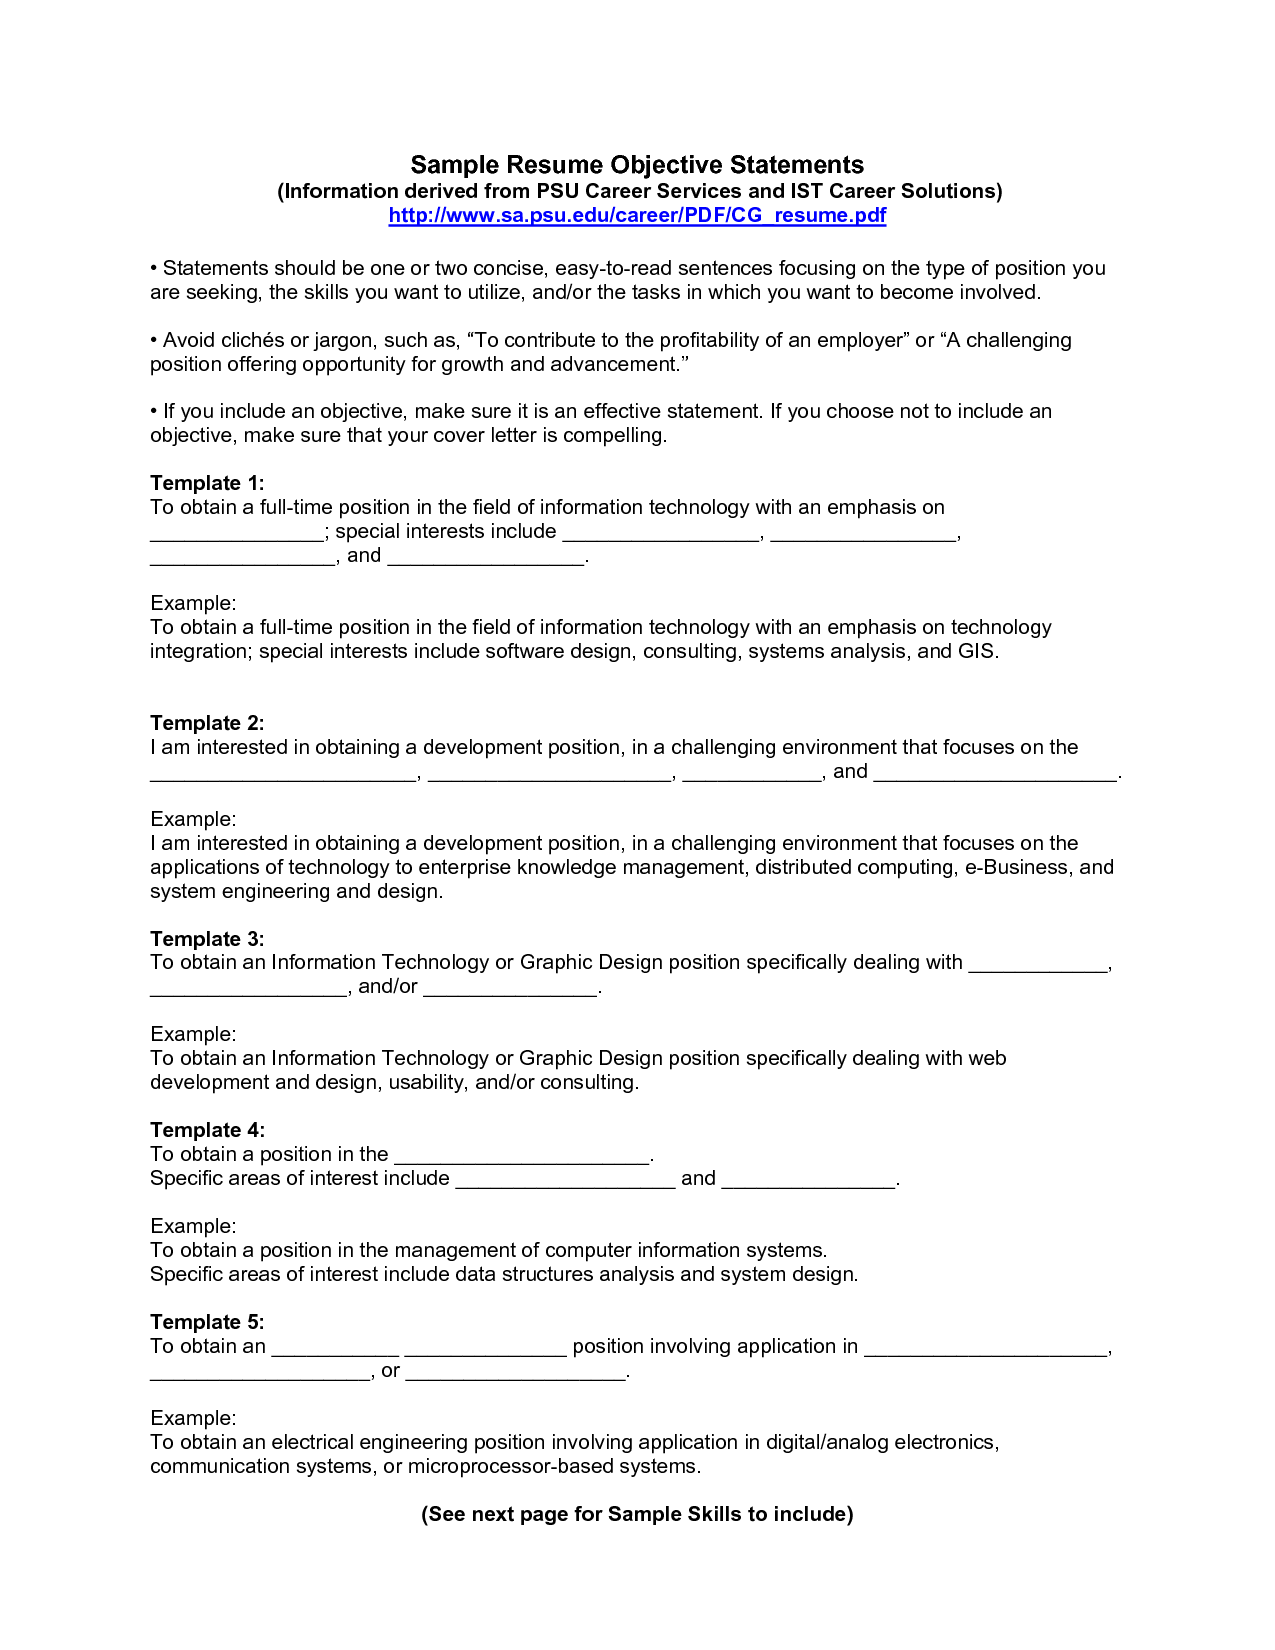 medical assistant job resume sample objective statements - It Job Resume Sample